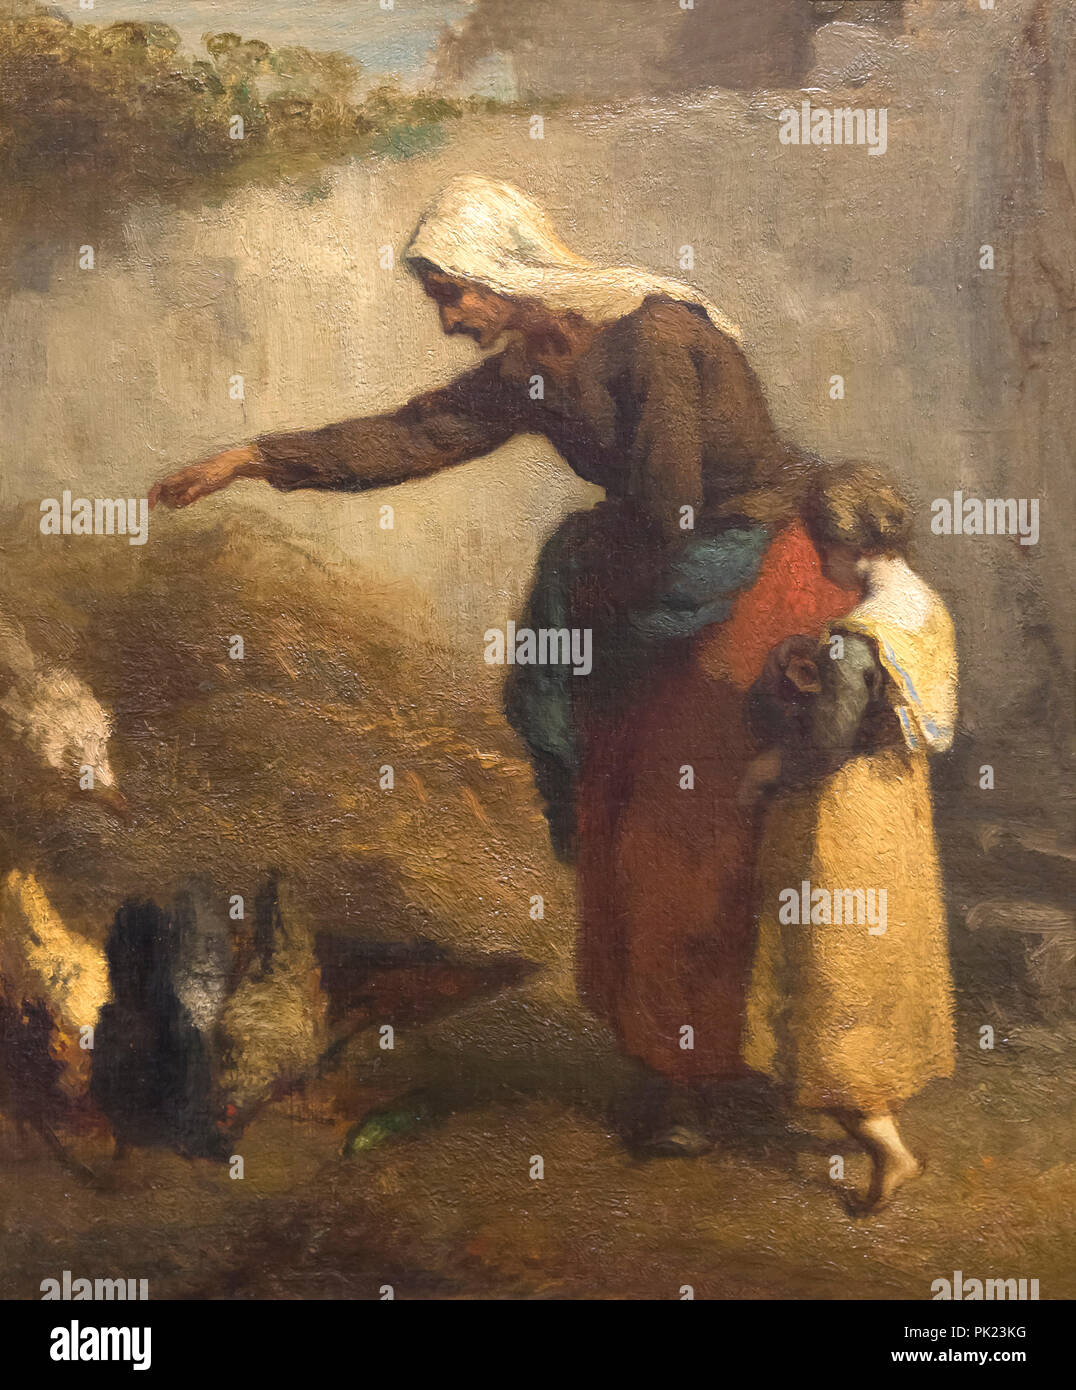 Woman feeding Chickens, Jean-François Millet, 1846-1848, Art Institute of Chicago, Chicago, Illinois, USA, Amérique du Nord, Photo Stock